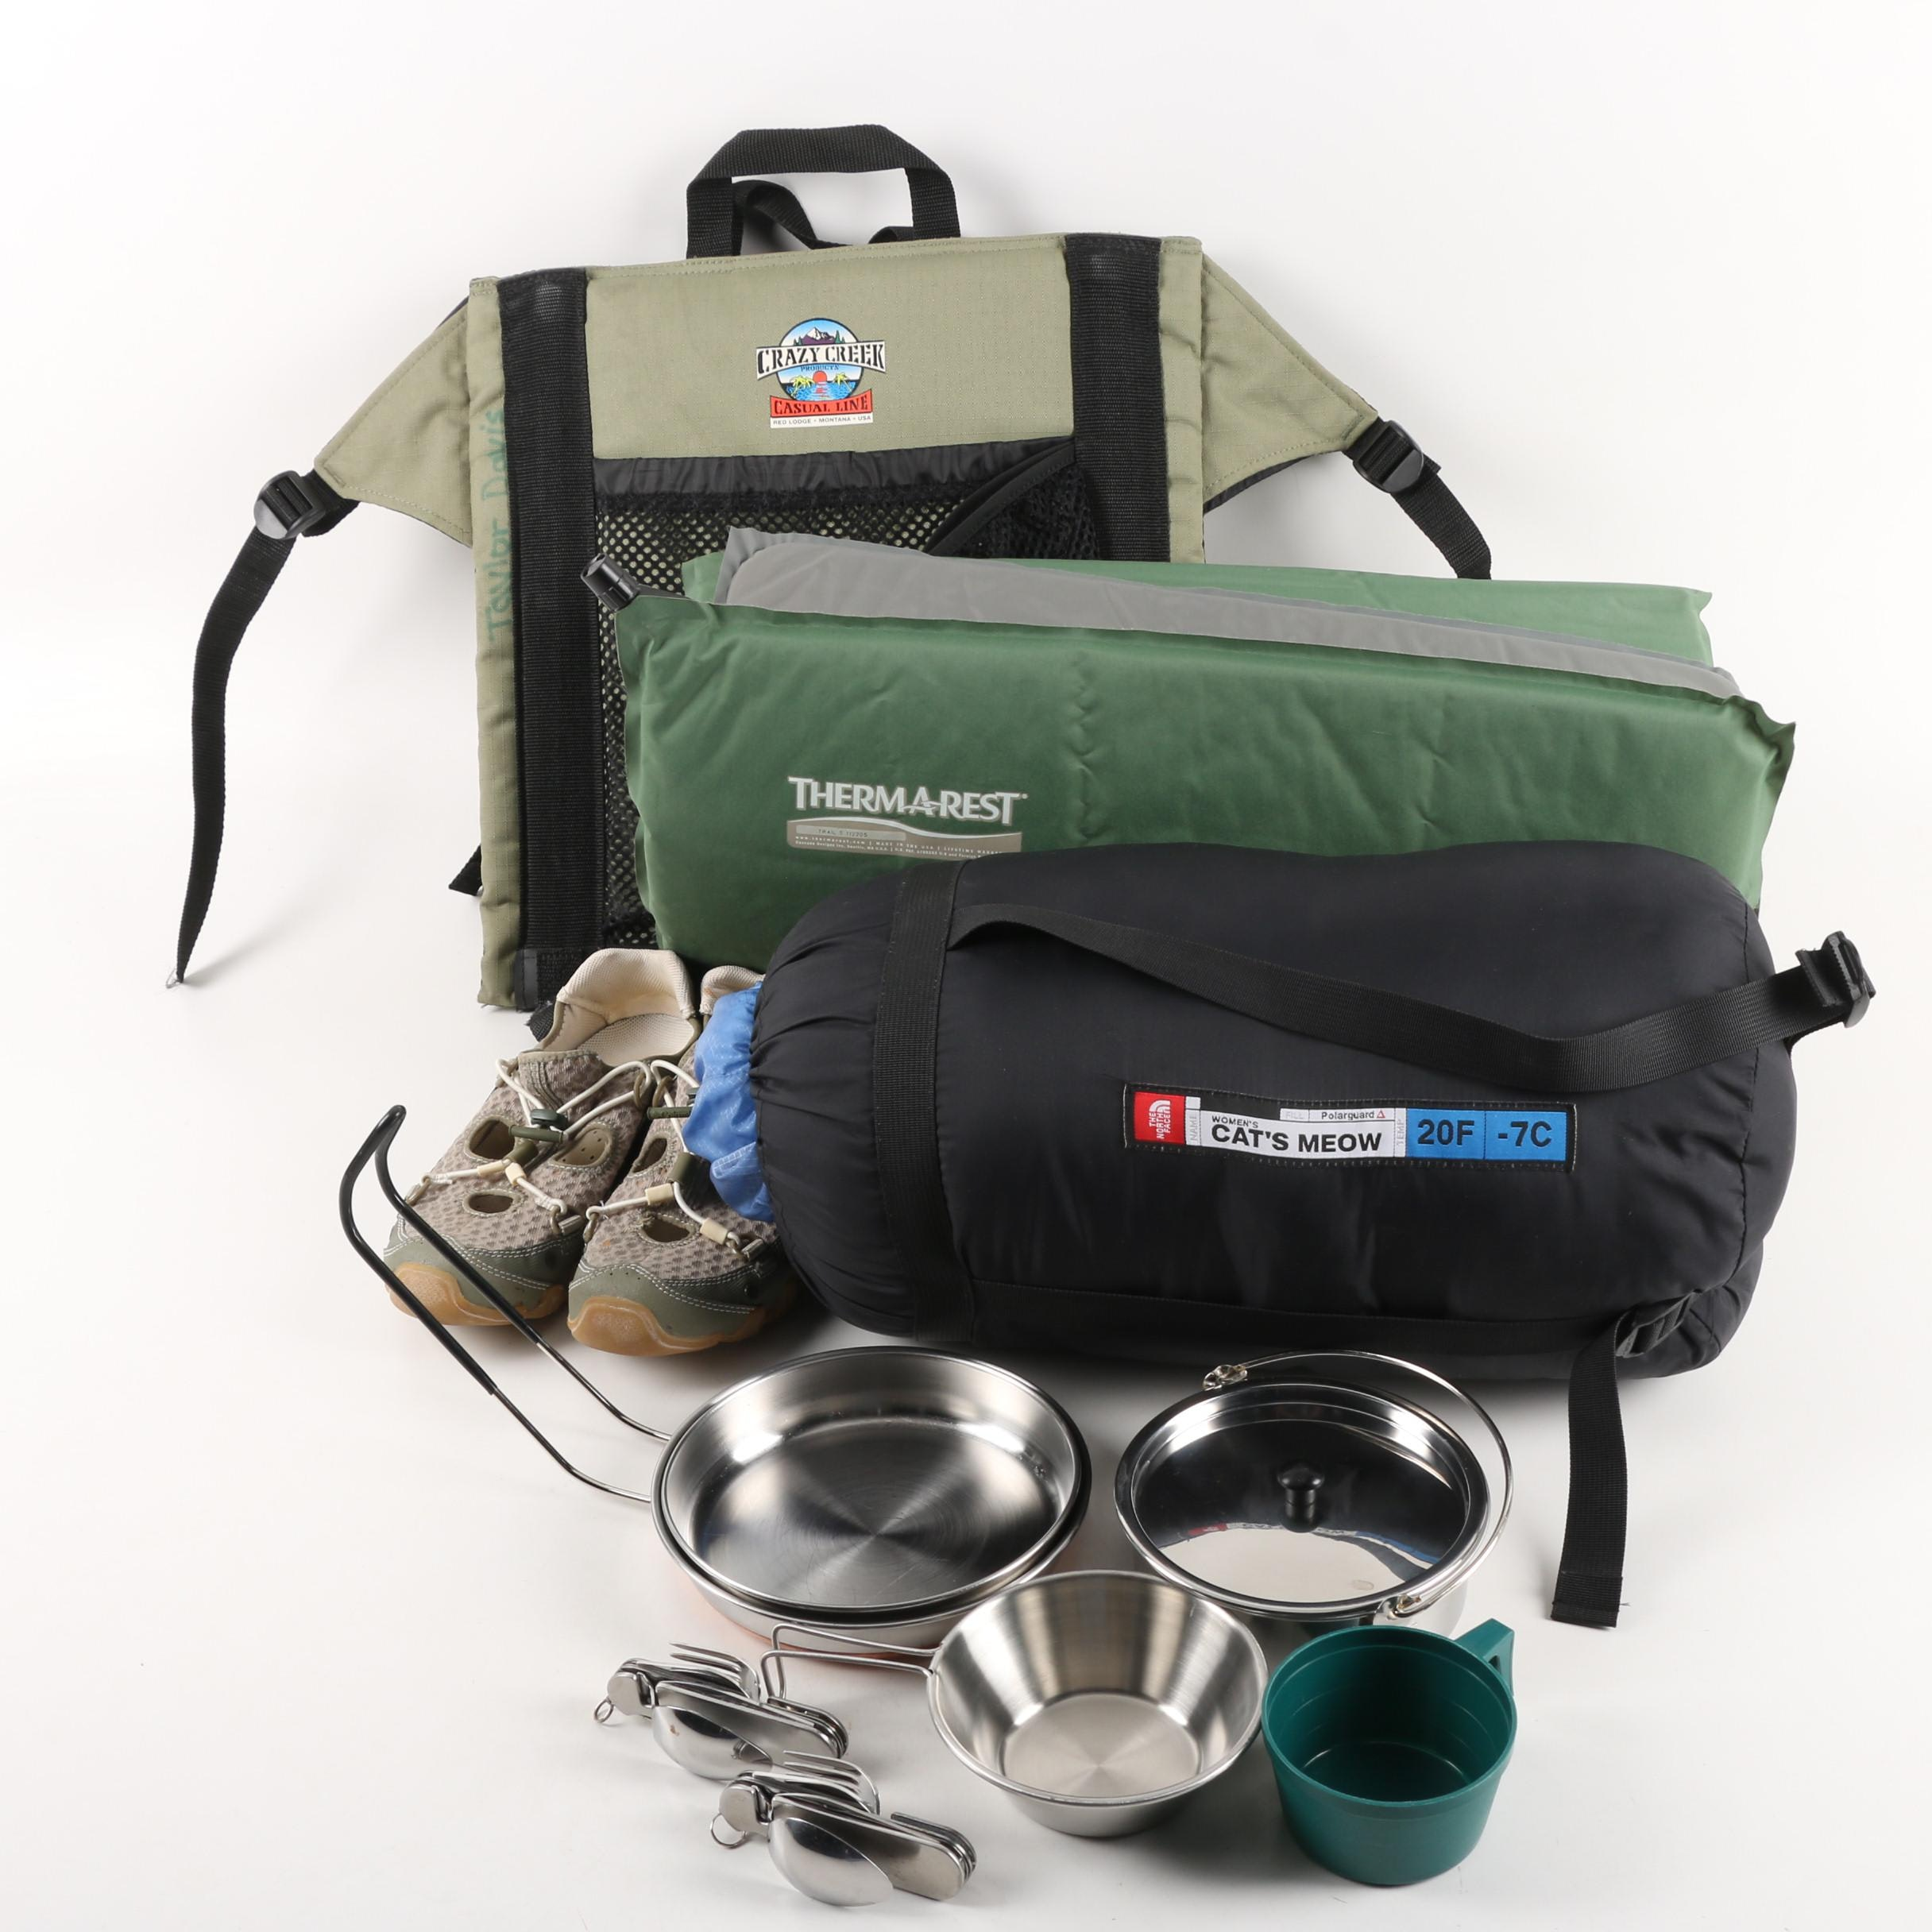 """The North Face """"Cat's Meow"""" Sleeping Bag, Therm-a-Rest Pad, & Other Camping Gear"""